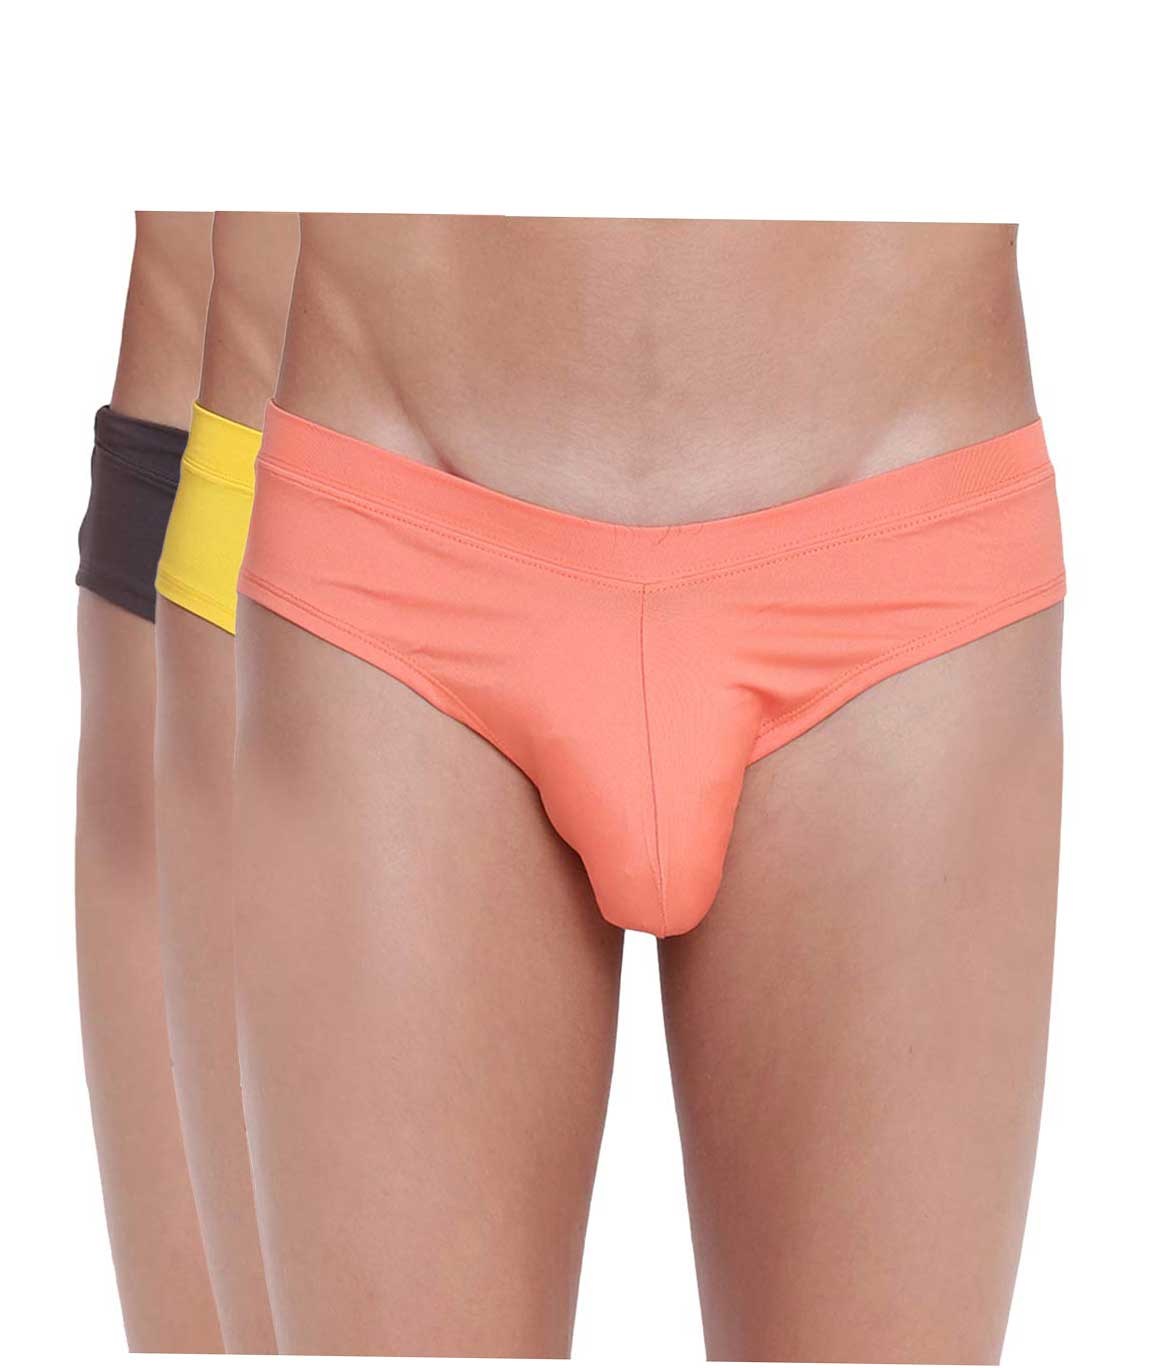 BASIICS Fanboy Style Brief by La Intimo (Pack of 3)